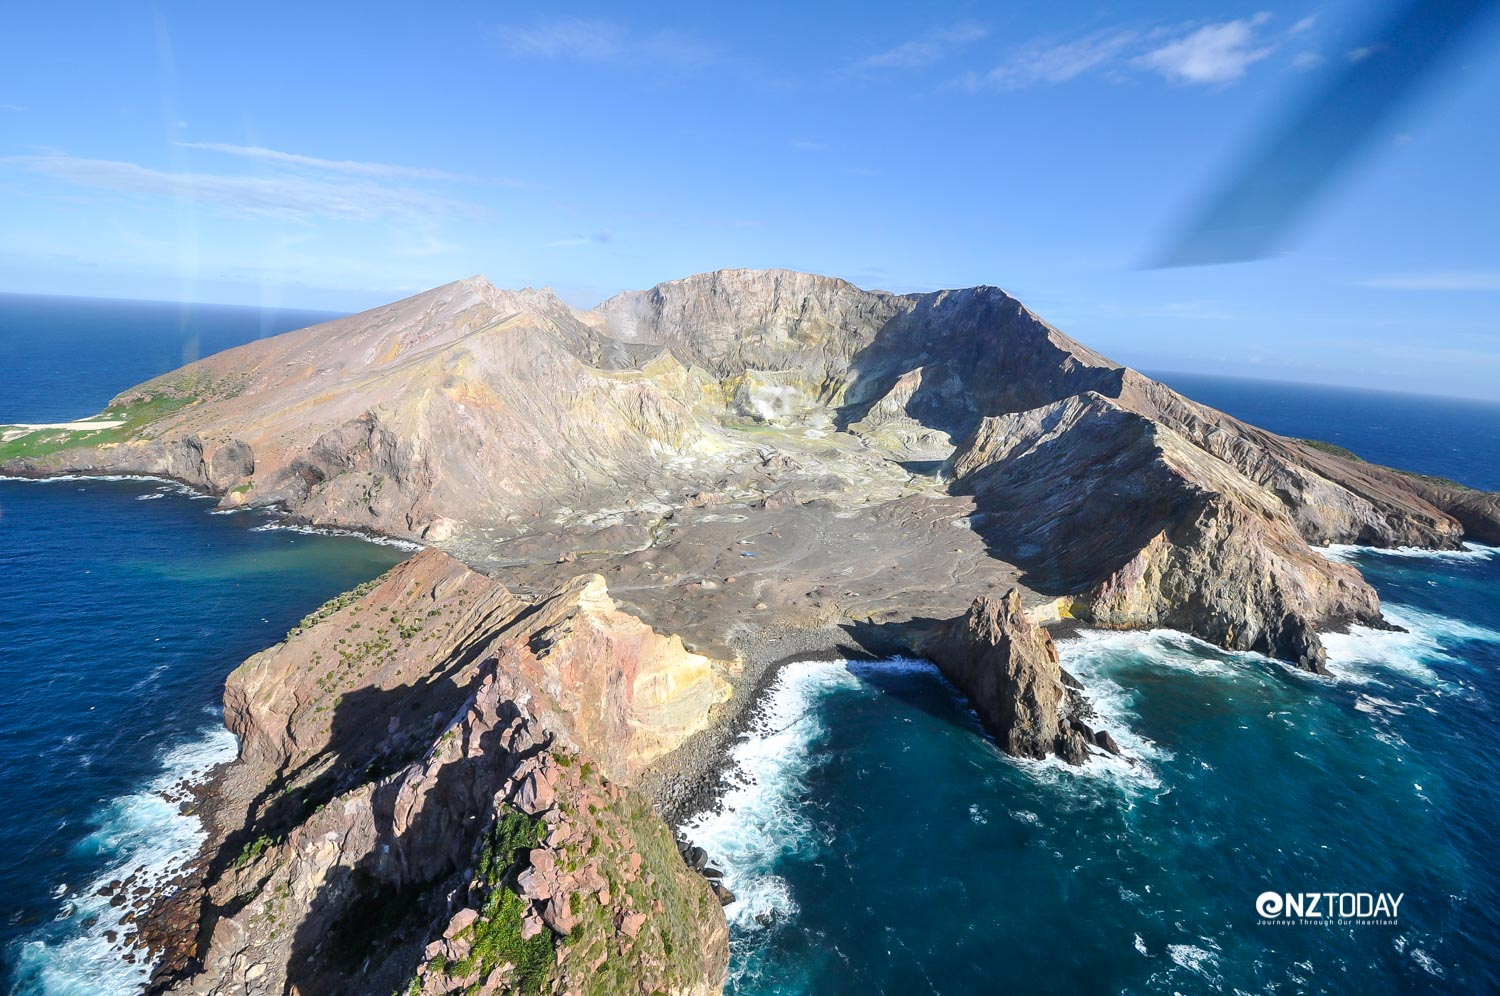 This volcano is 321 metres above sea level, but goes down at least 1600 metres relative to the sea bed. The crater is about 30 metres below sea level, which is just one of the factors that makes it unique in the world